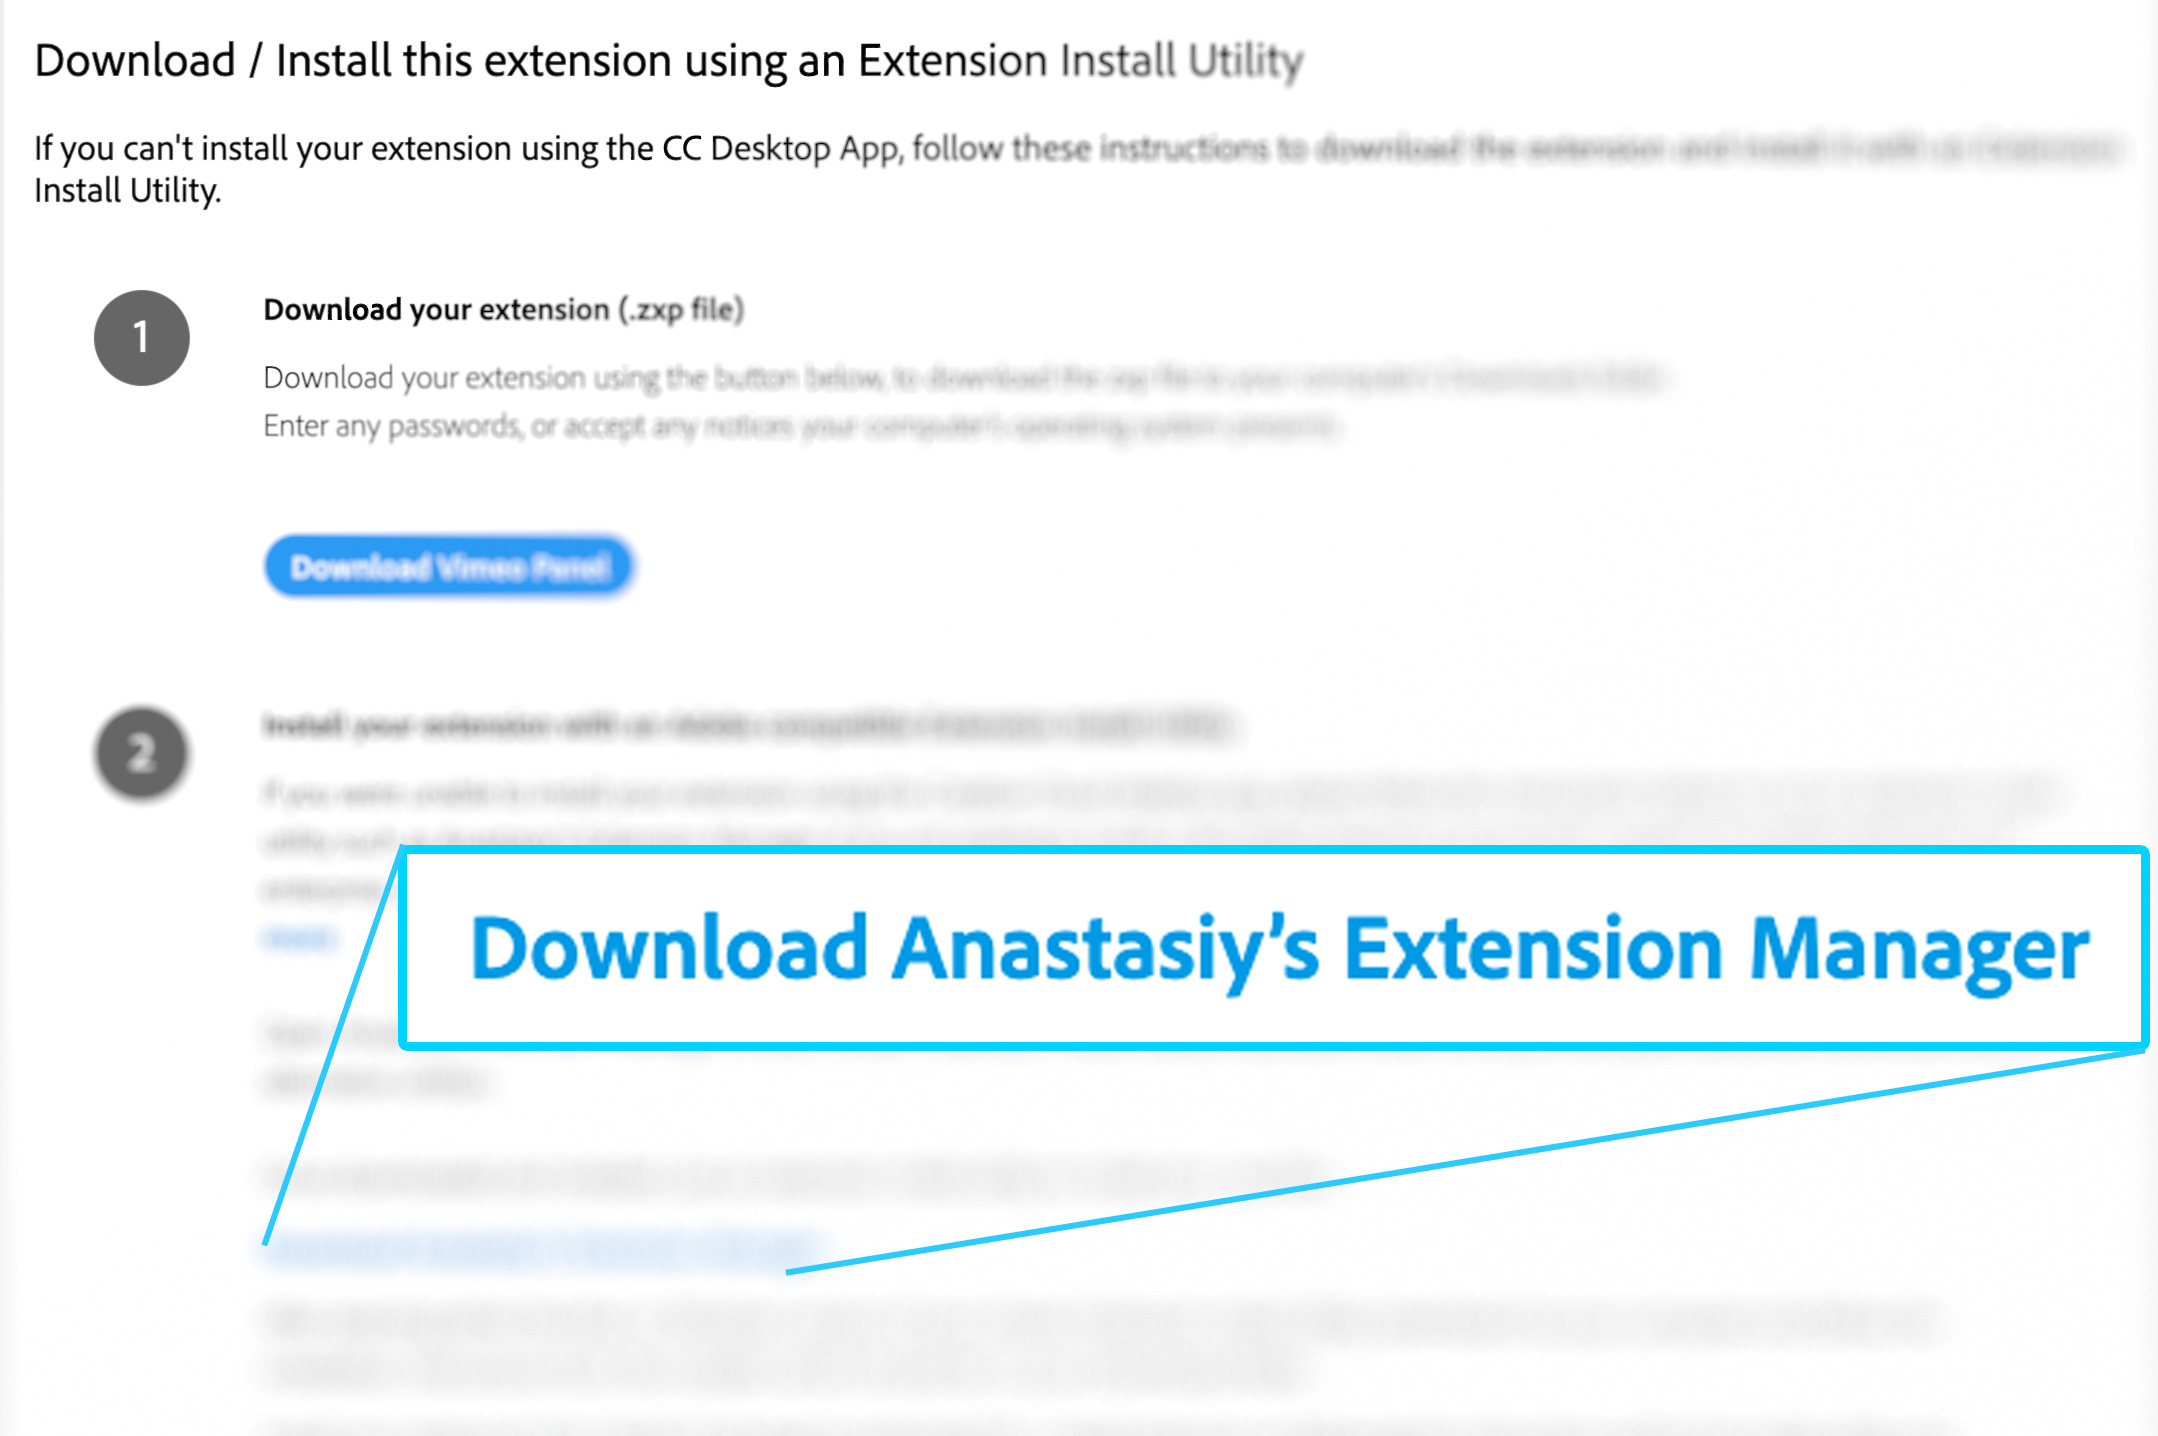 Adobe recommends Anastasiy's Extension Manager to install all extensions